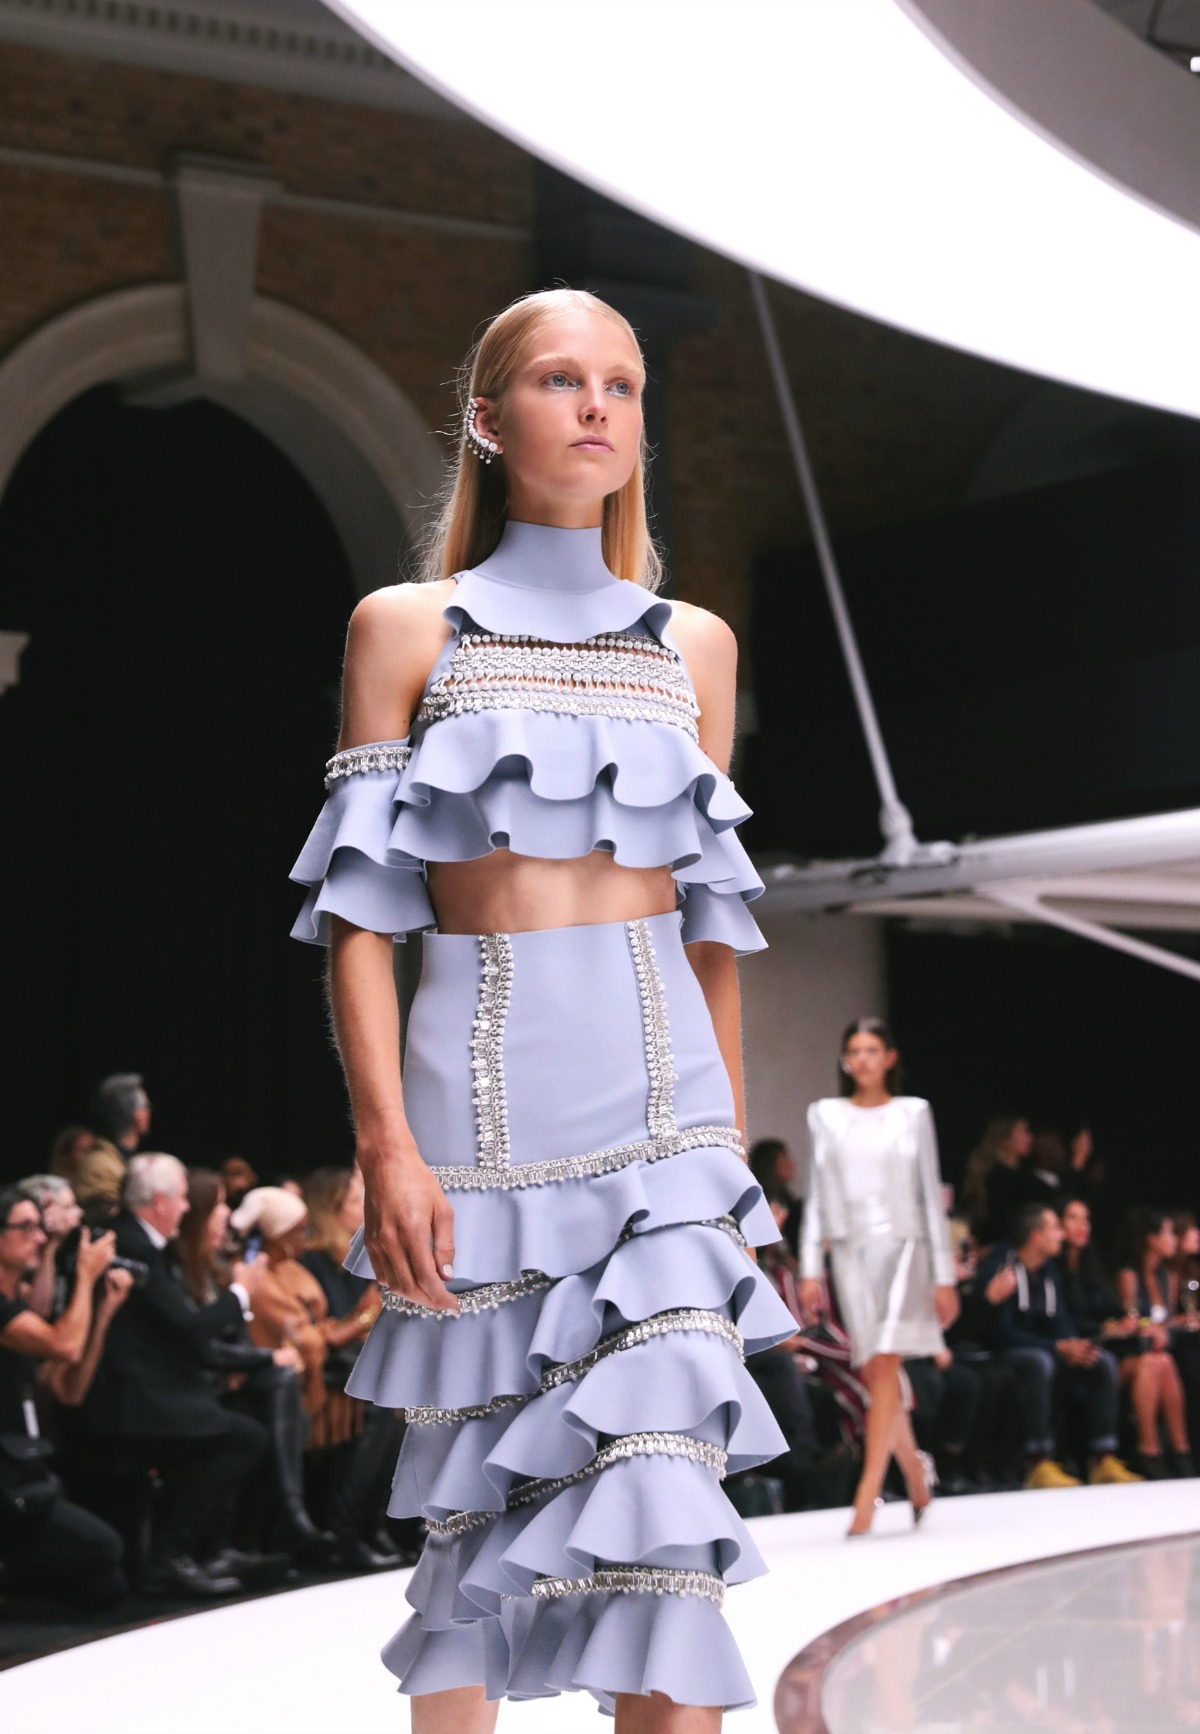 Ralph and Russo Spring 2018 Ready-to-Wear collection at London Fashion Week I DreaminLace.com